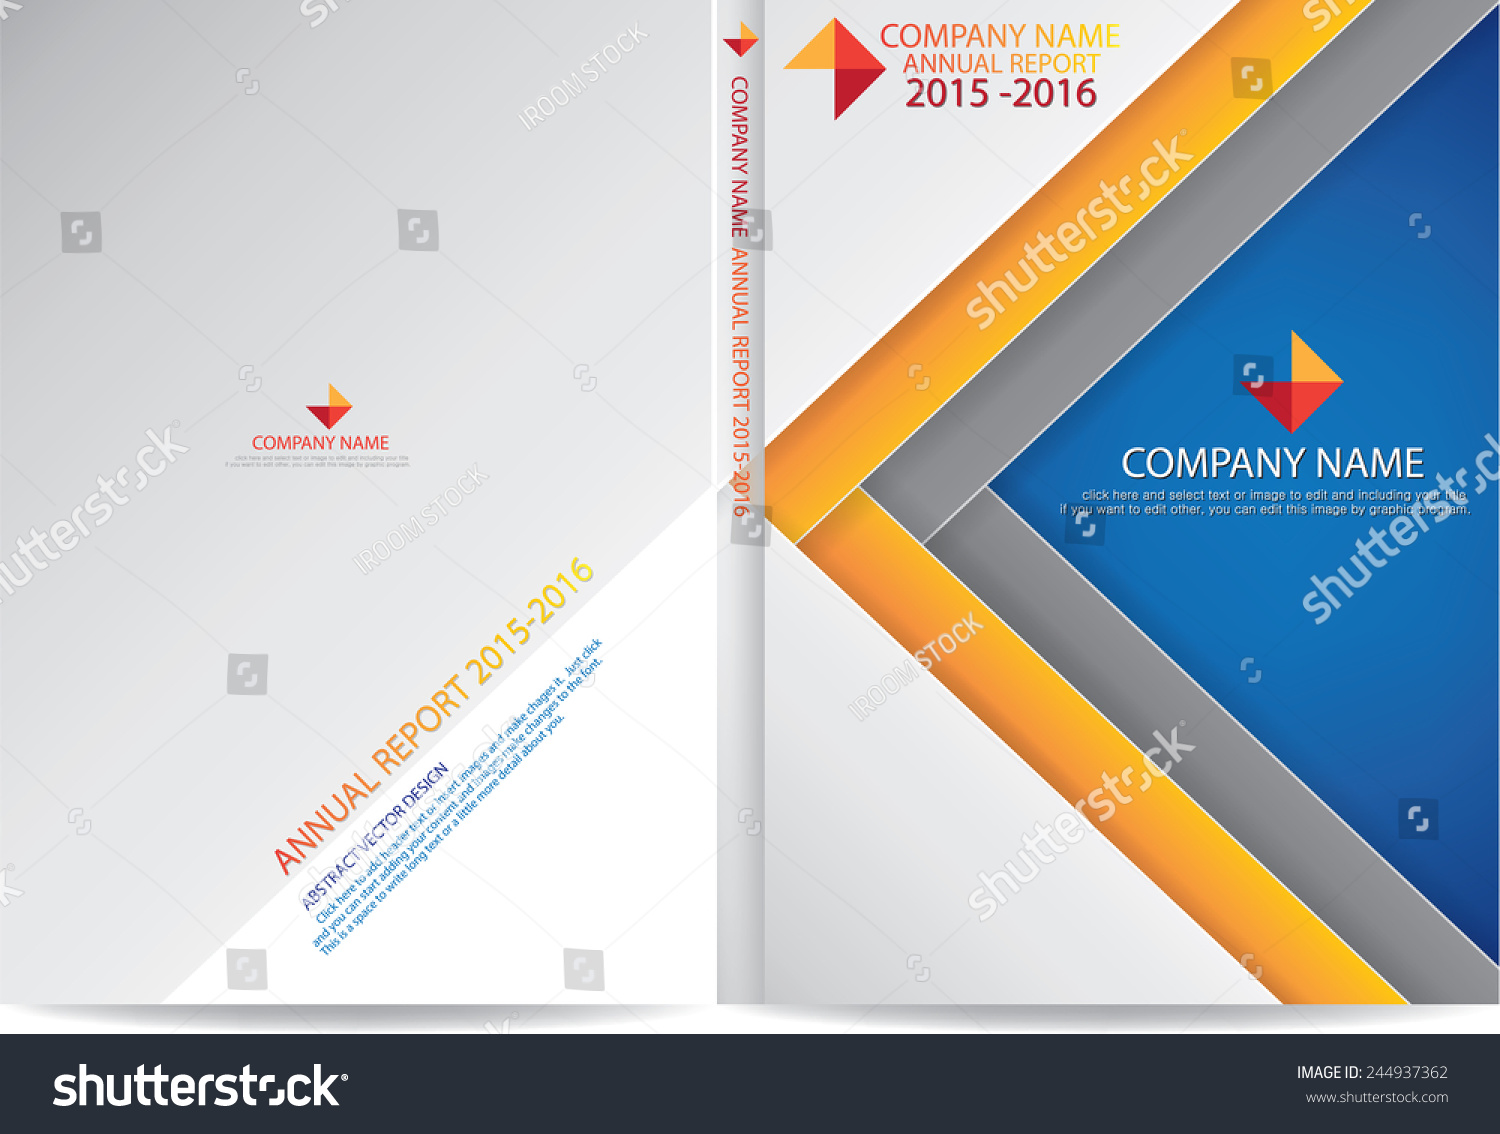 annual report cover design stock vector shutterstock annual report cover design